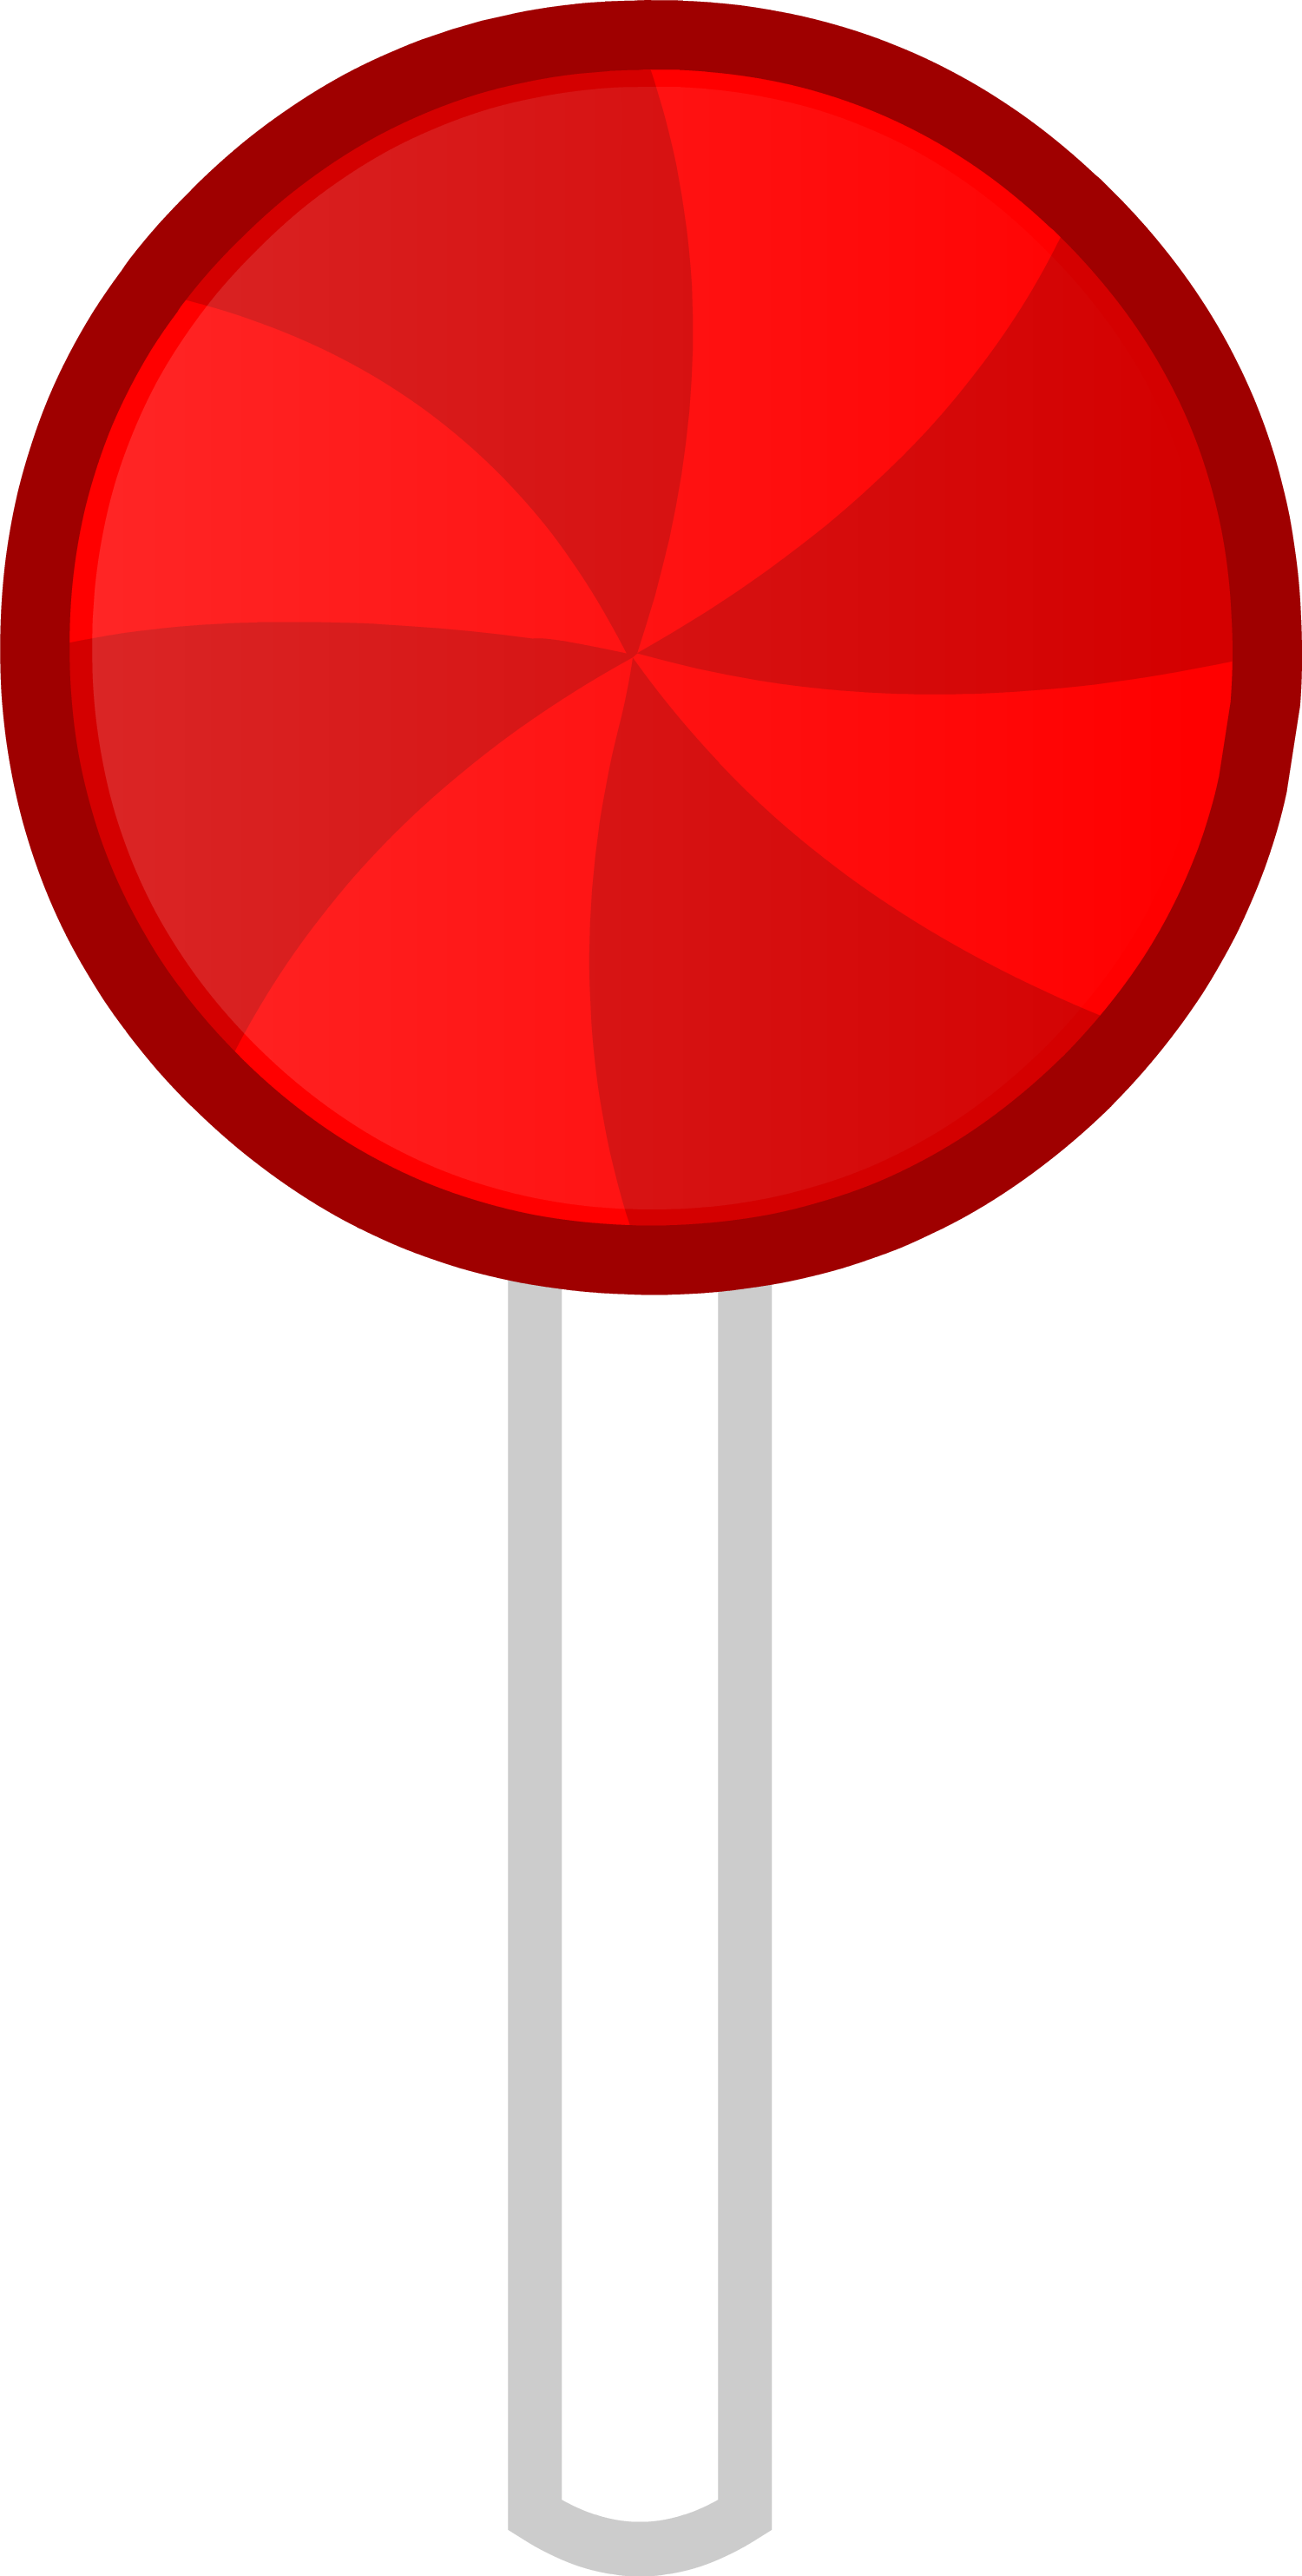 Image body png inanimate. Lollipop clipart object